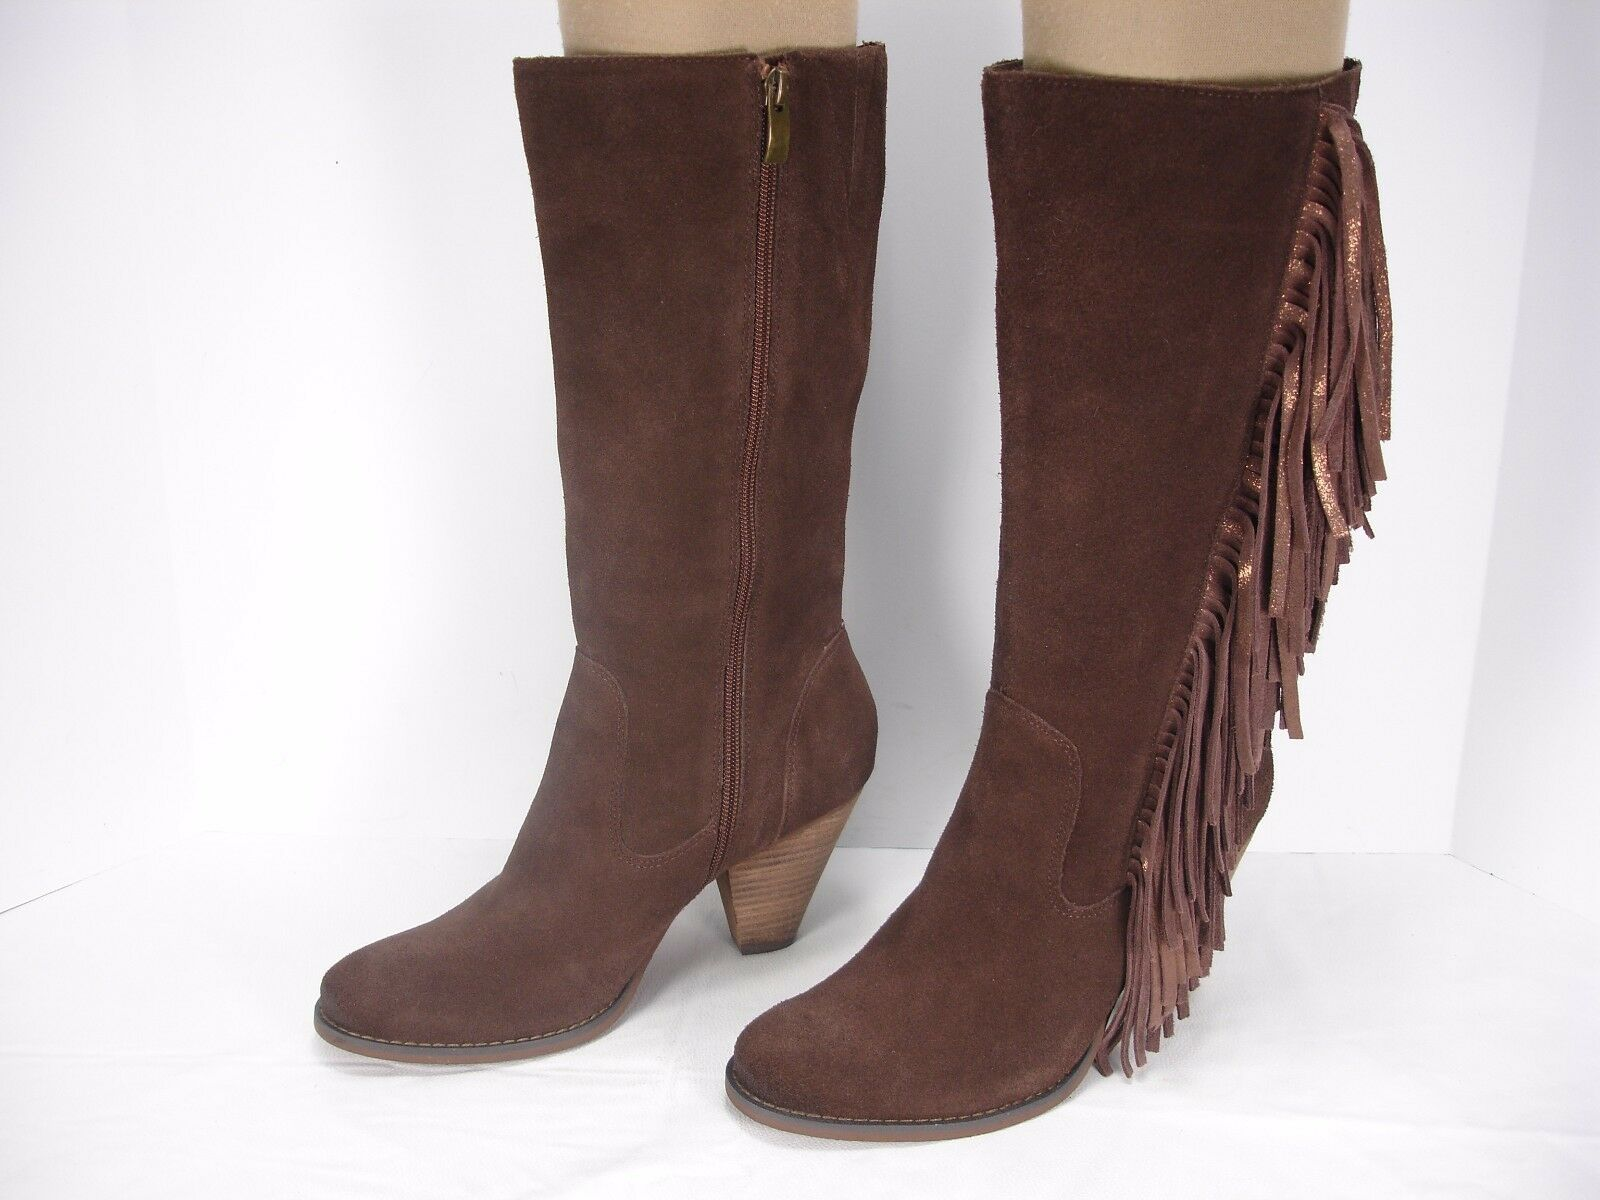 REBA COWGIRL BROWN SUEDE FRINGES SIDE ZIP MID-CALF WESTERN BOOTS WOMEN'S 7.5